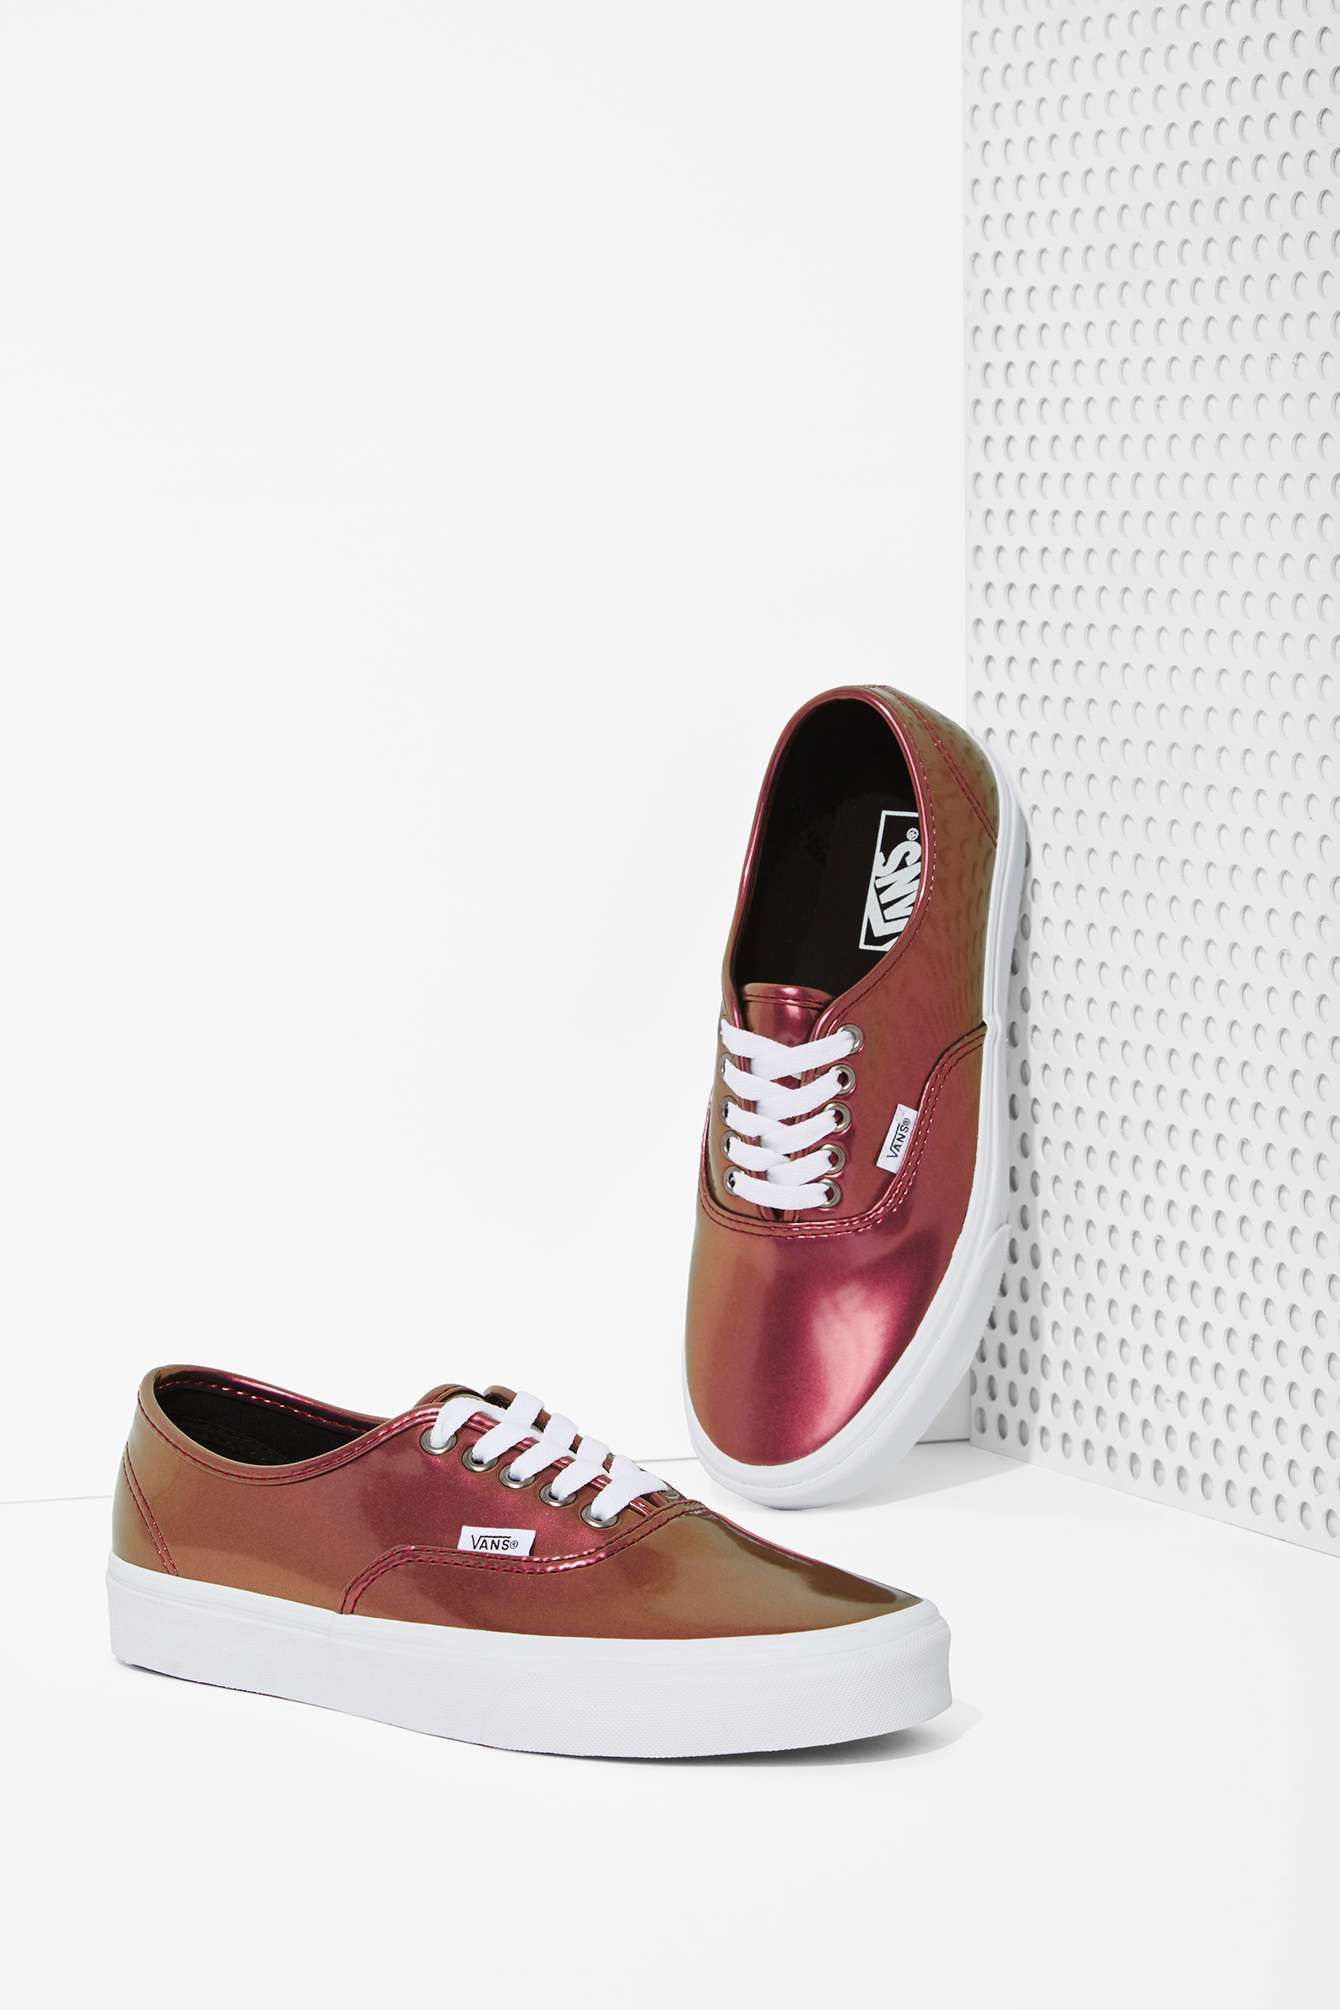 b83374fb02 Vans Authentic Sneaker - Metallic Pink